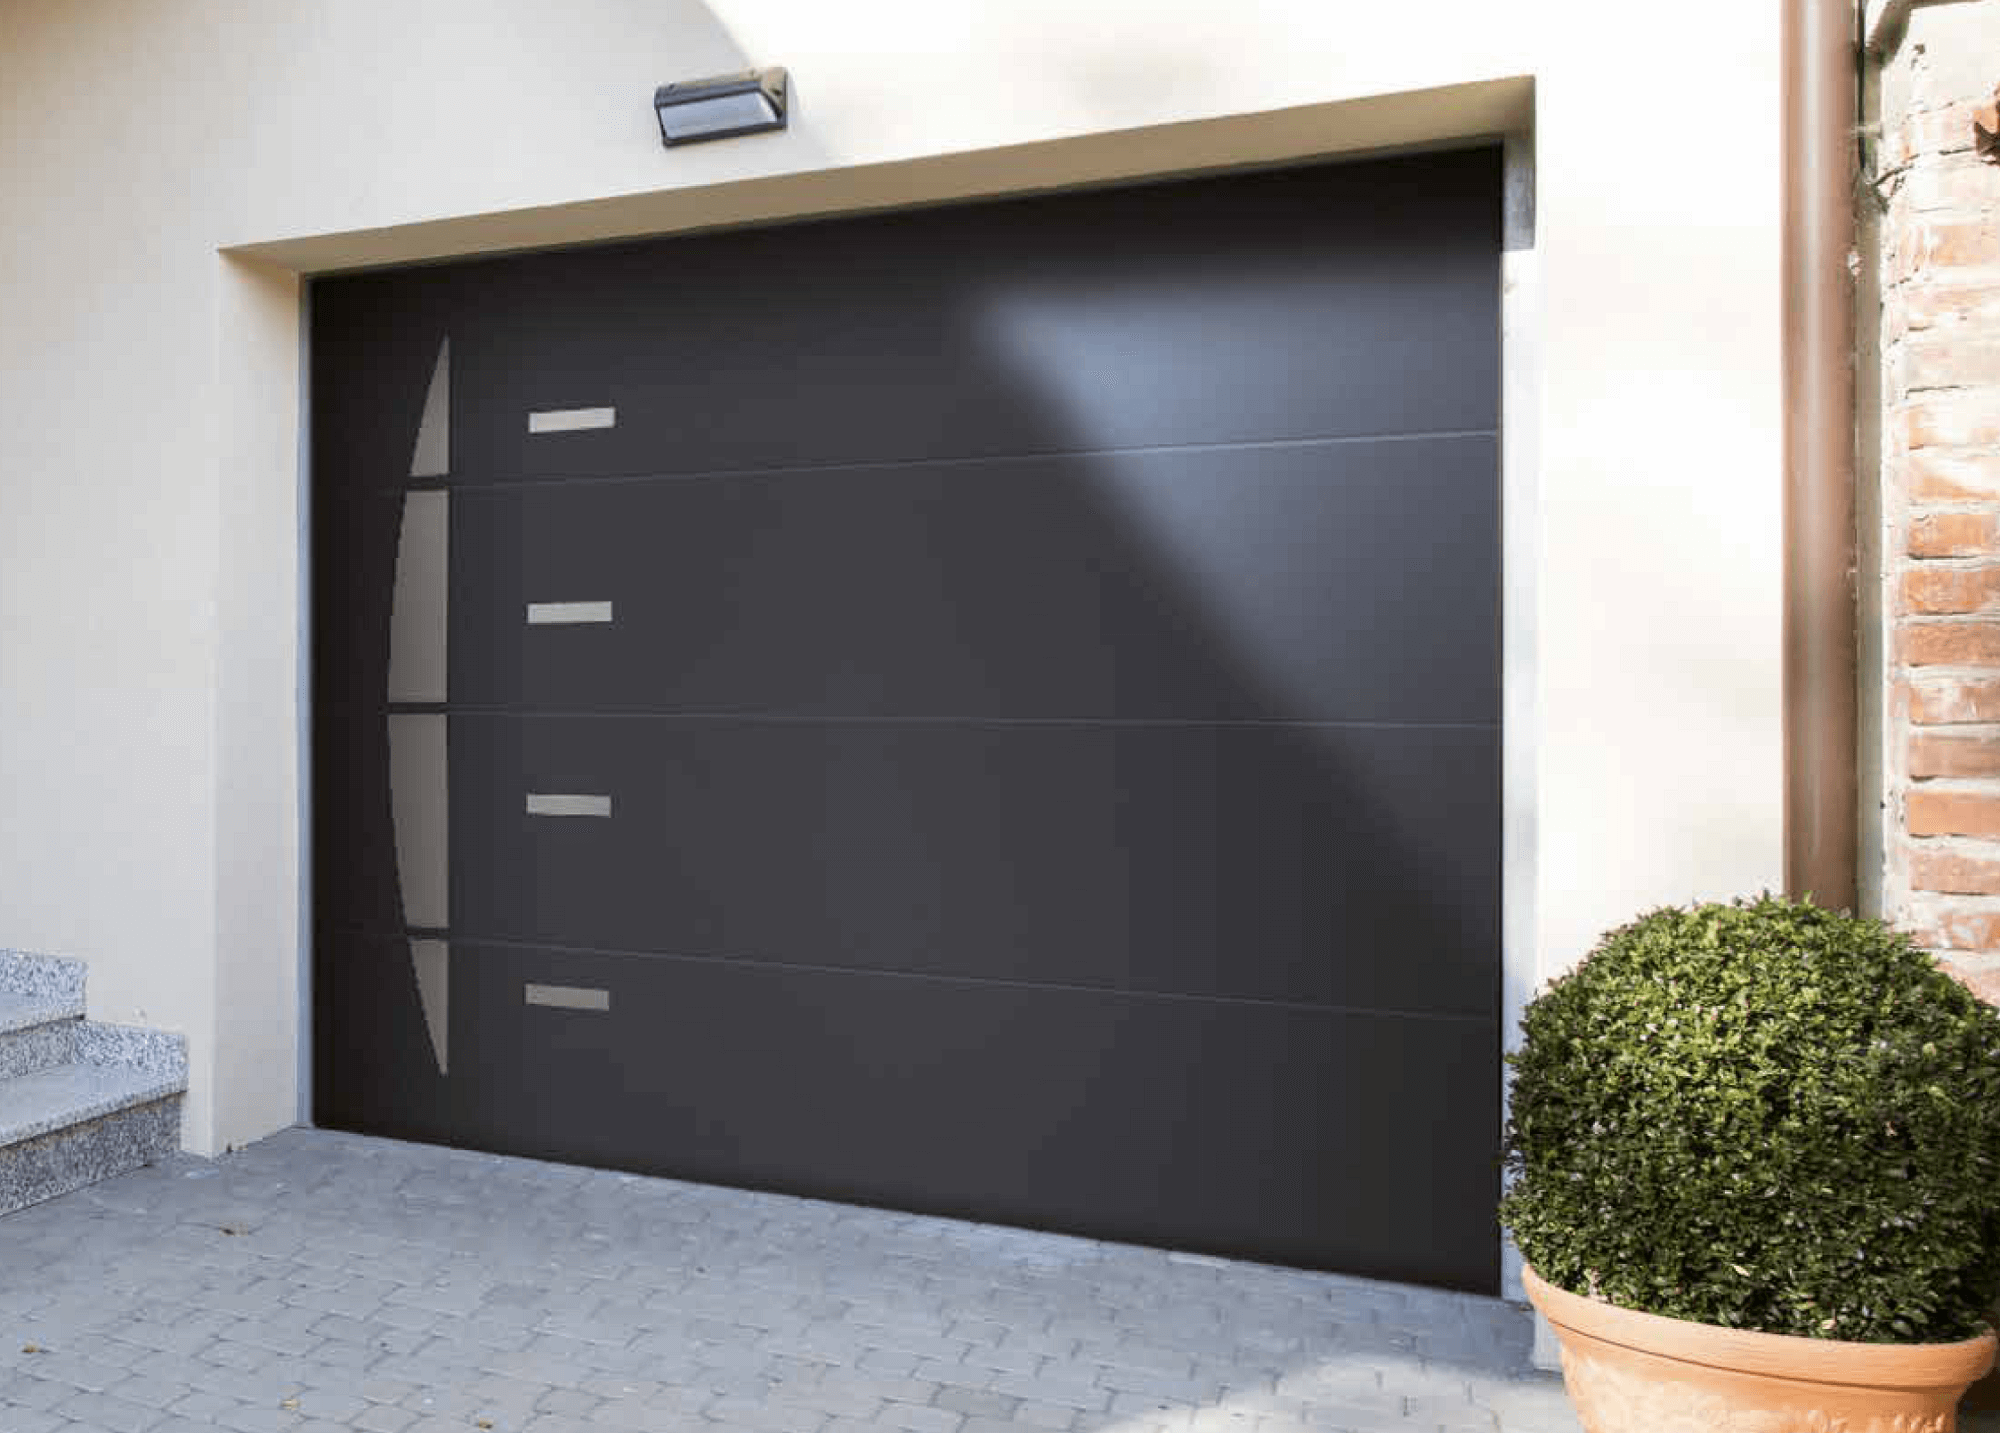 Porte de garage motoris e portes de garage sur mesure - Porte de garage sectionnelle motorisee hormann ...